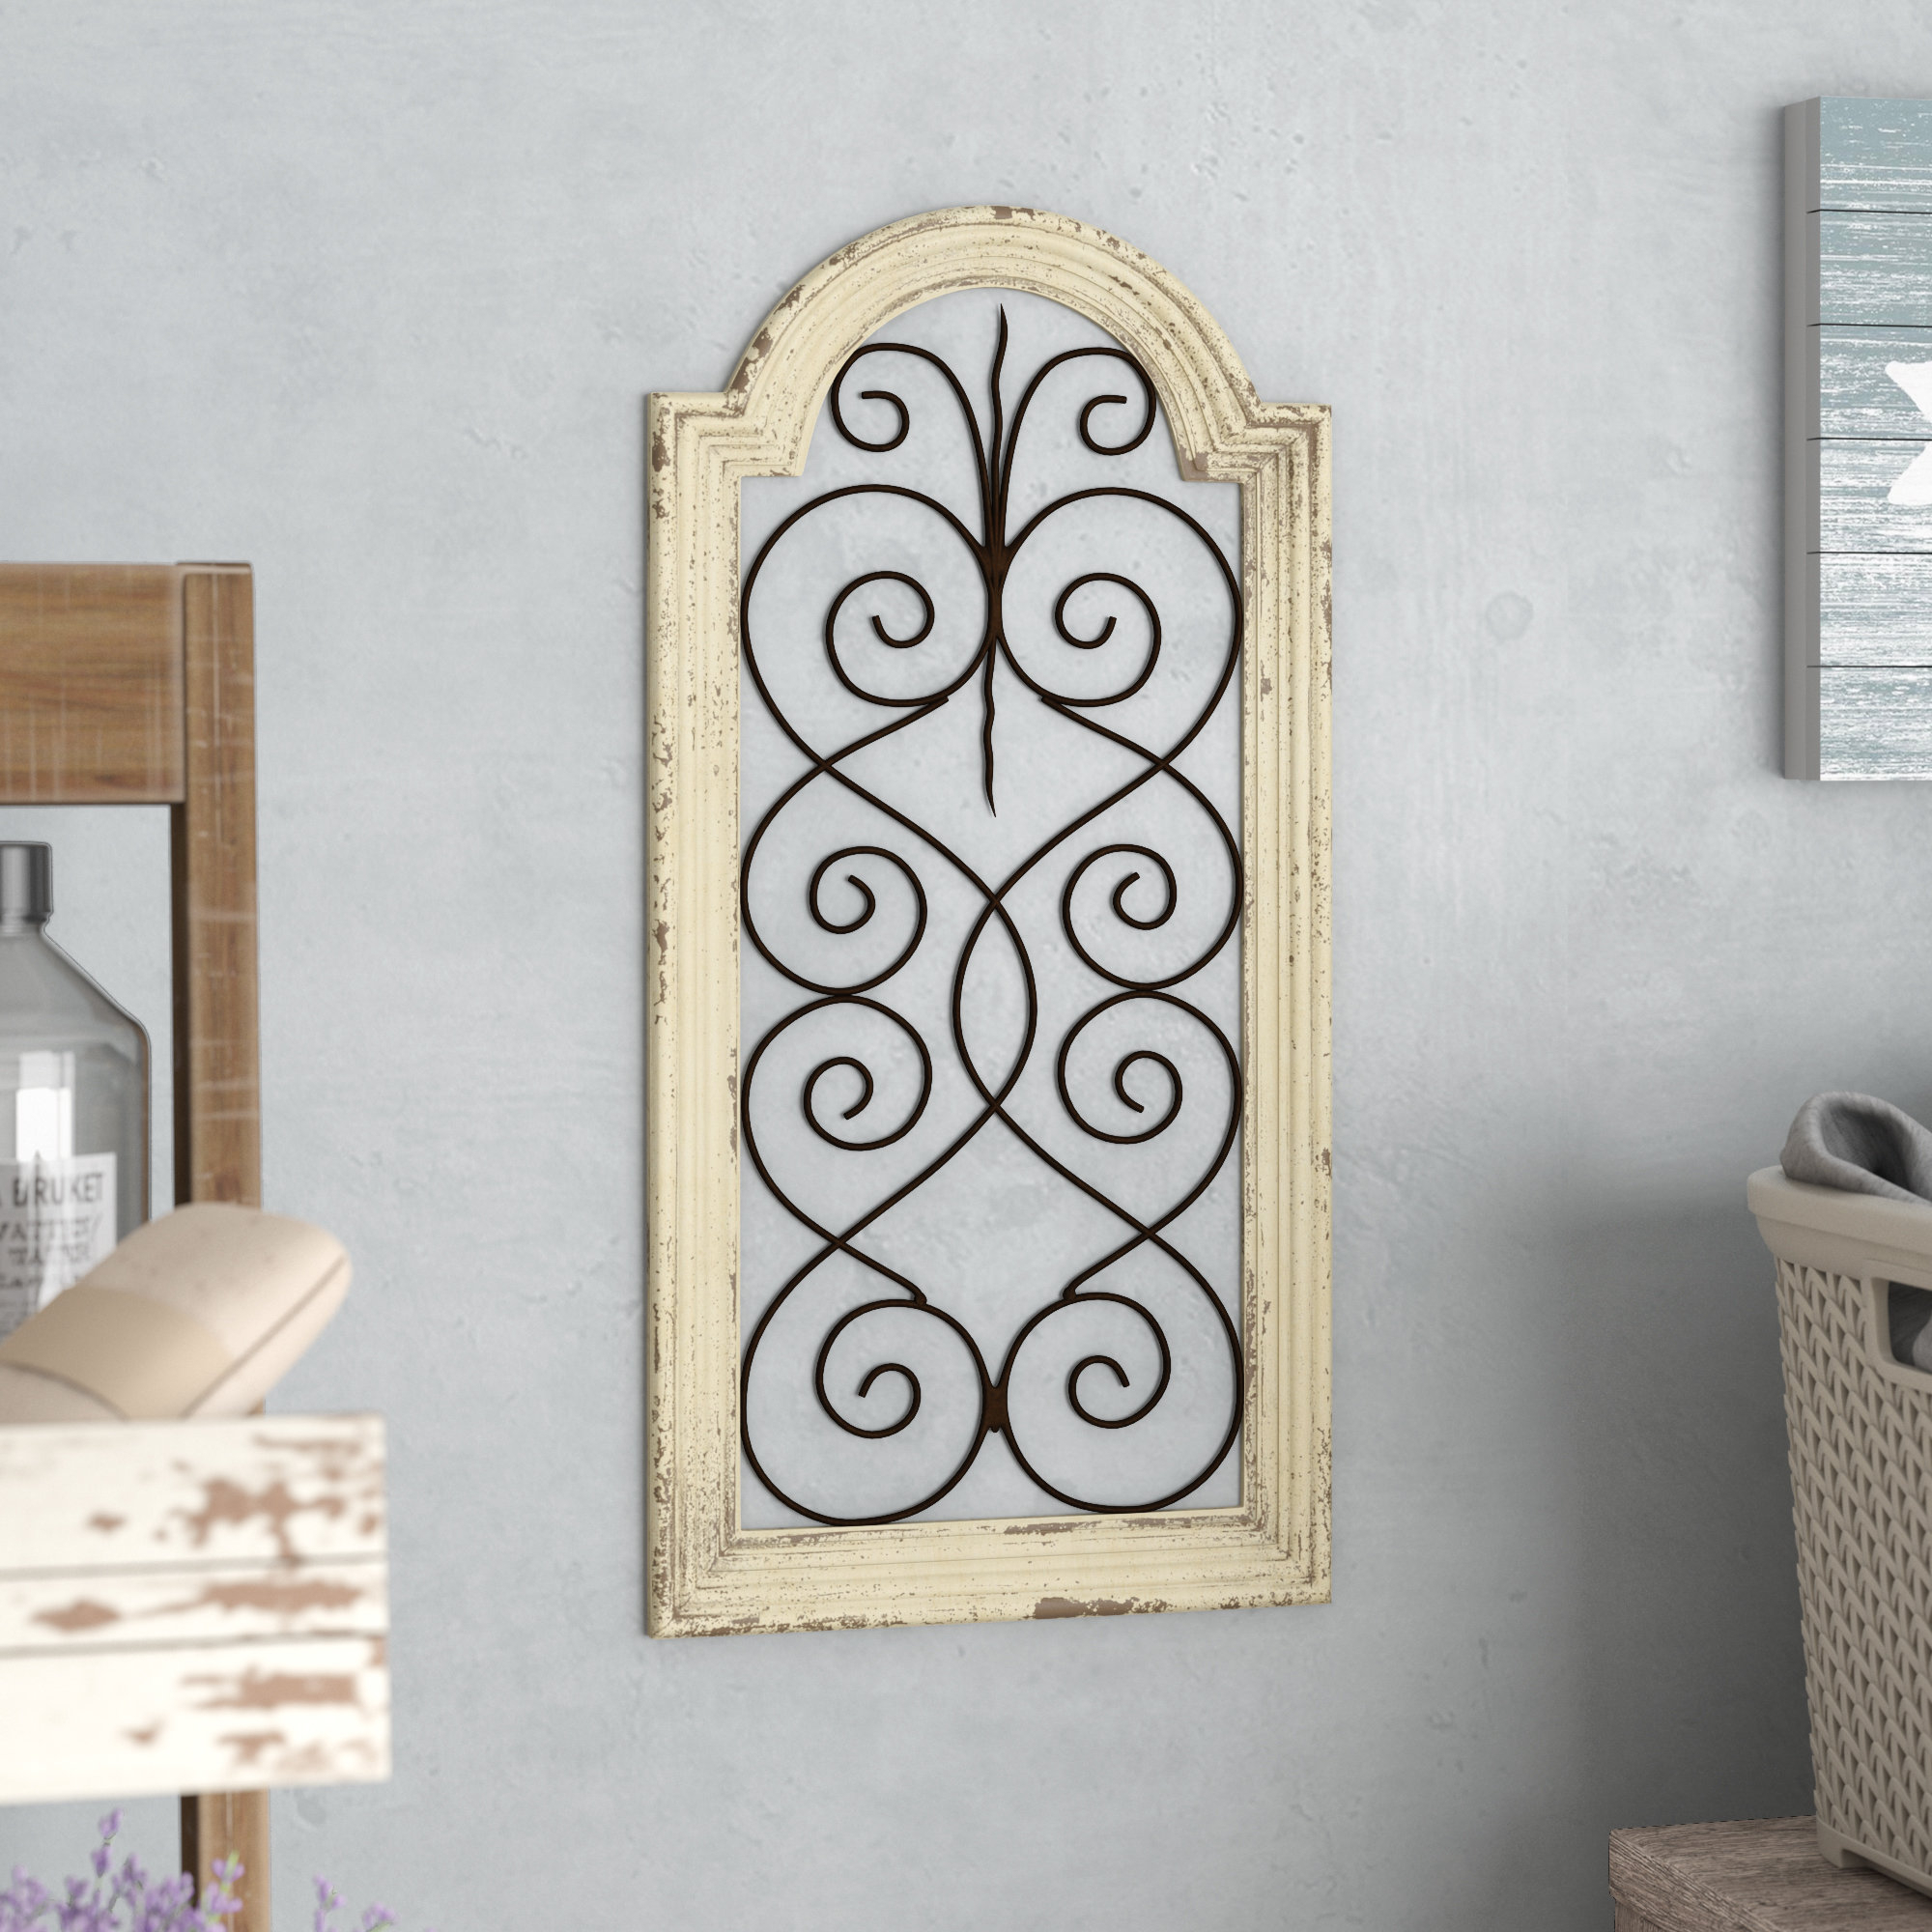 Wayfair Throughout 1 Piece Ortie Panel Wall Decor (View 17 of 20)